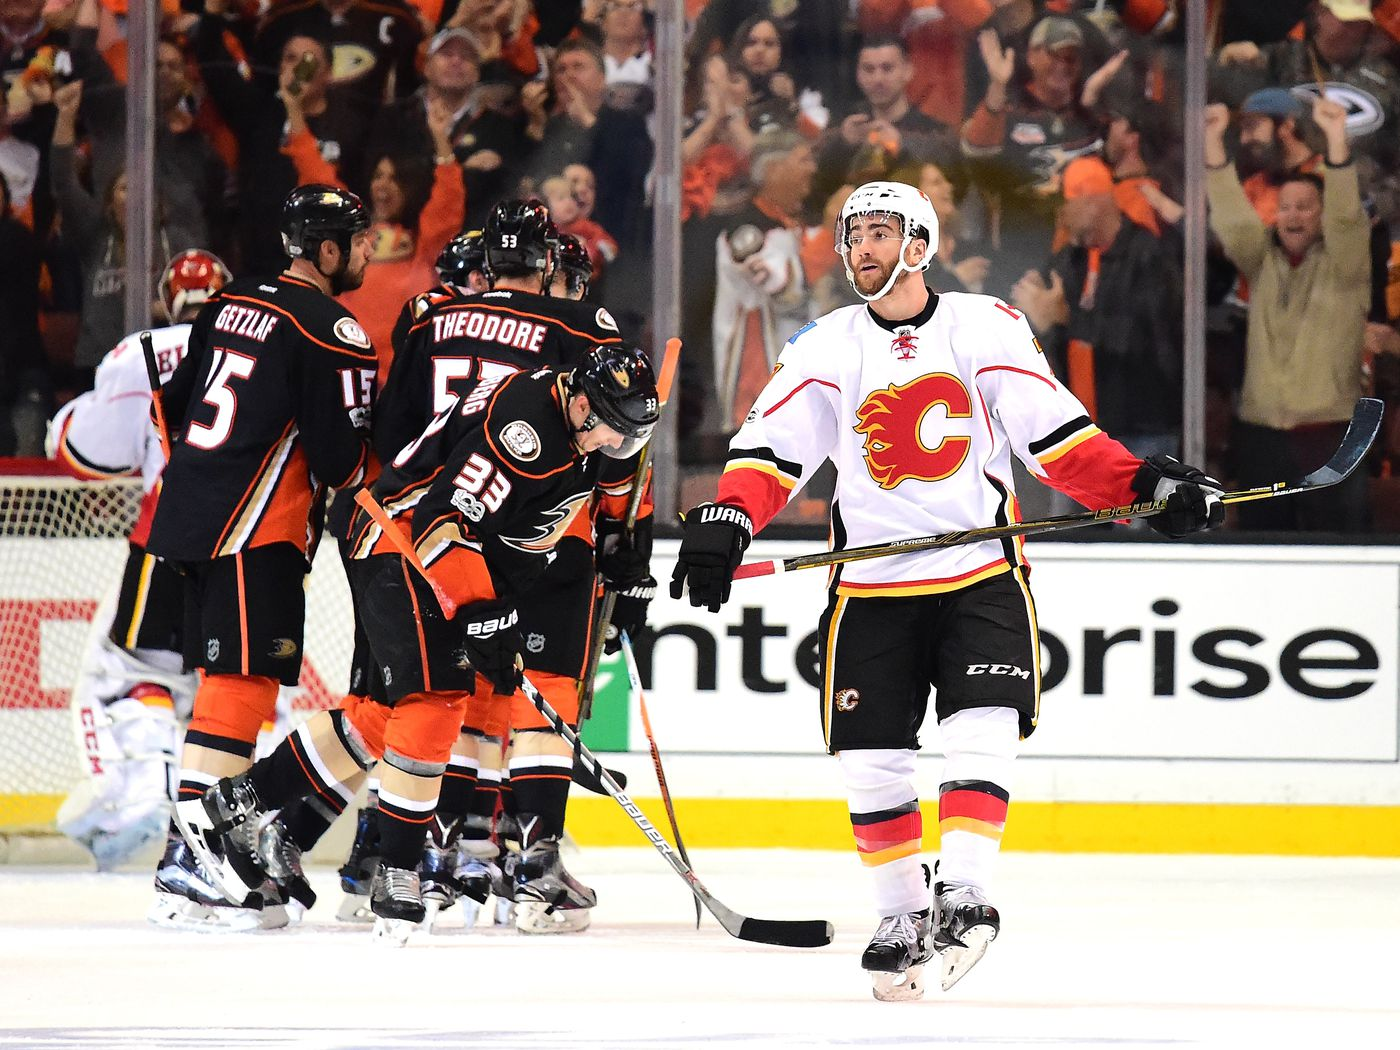 Calgary Flames In Anaheim Yup It S As Bad As You Think Matchsticks And Gasoline